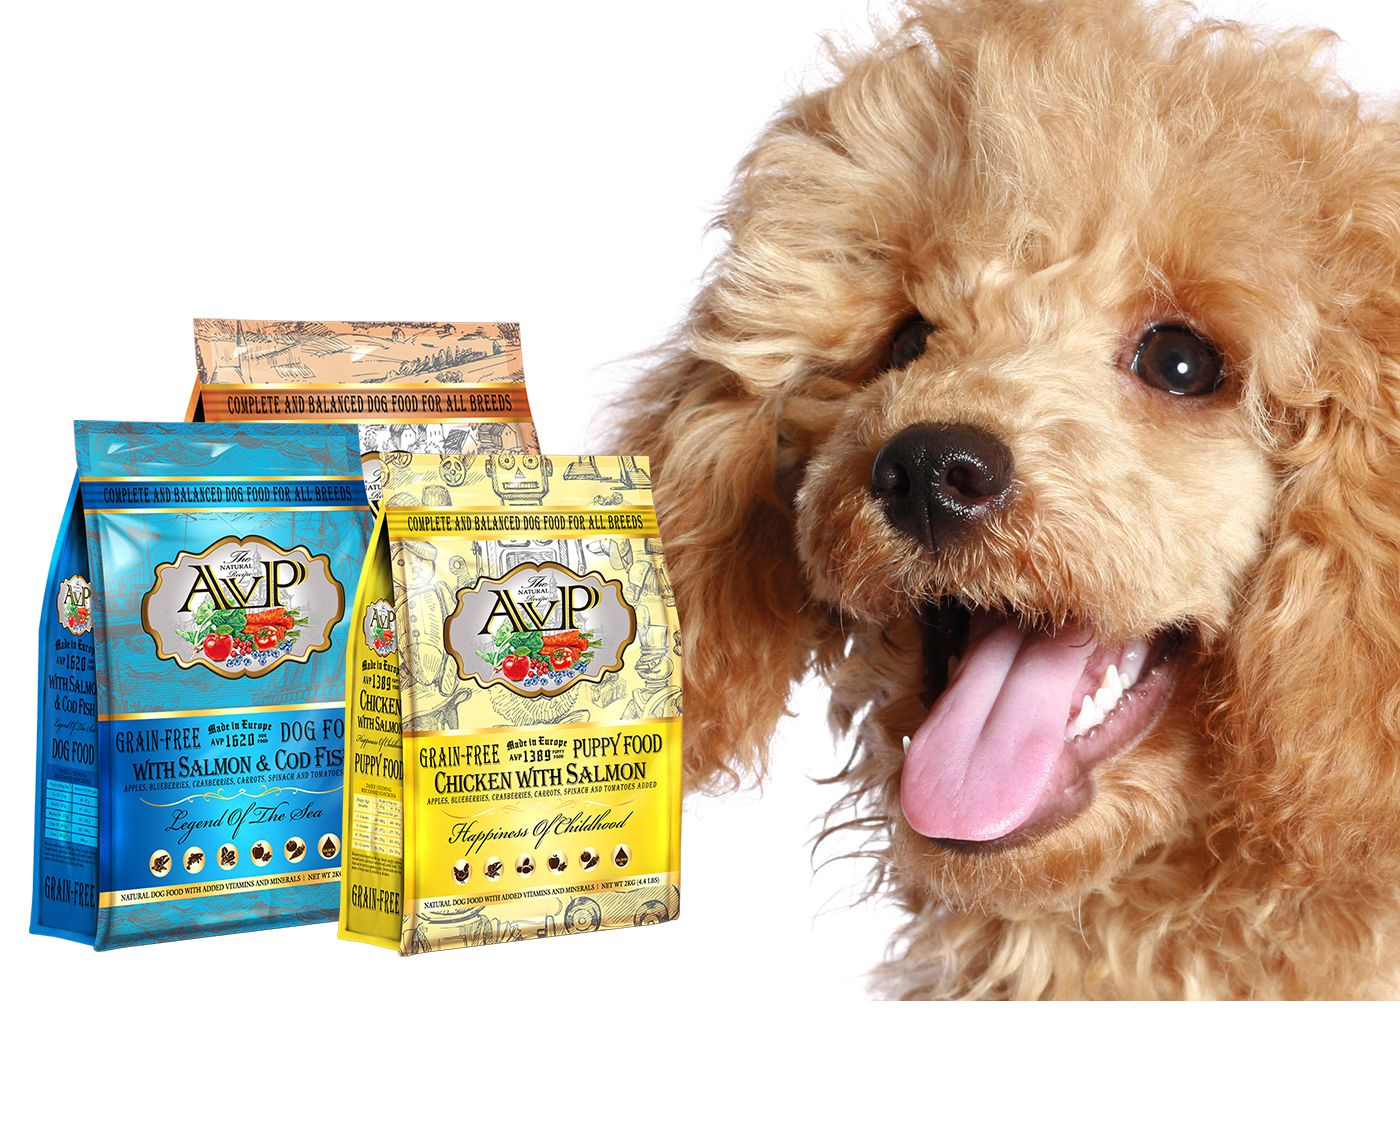 AVP® DOG FOOD